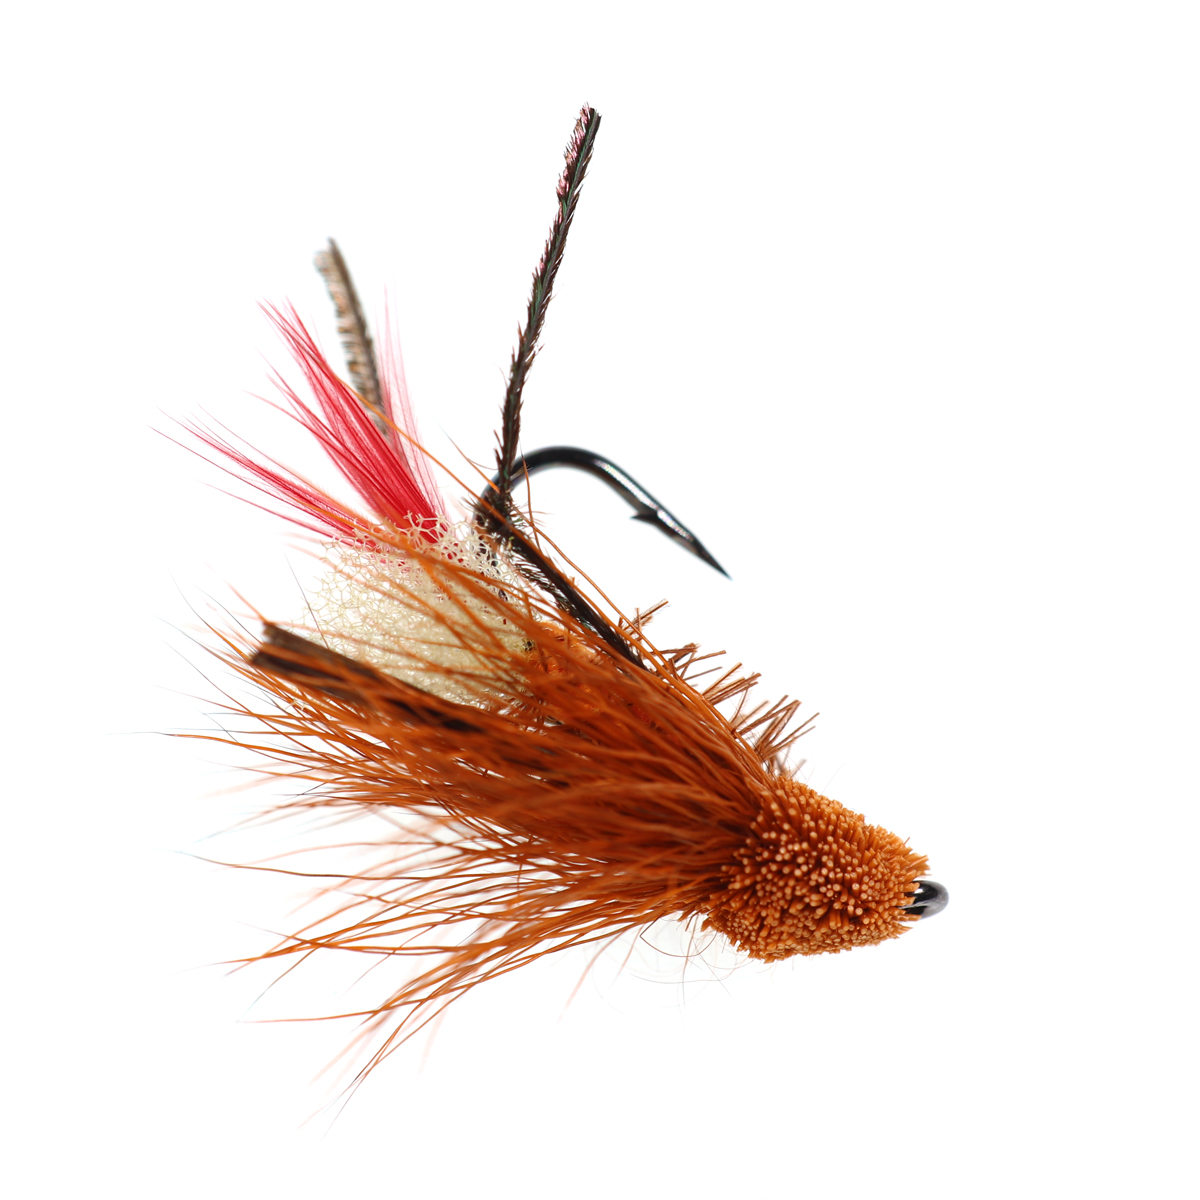 5PCS #10 Trout Fishing Fly Grass Hopper Fly terrestrial Hopper Fly Floating Bass Crappie Bug Bait Artificial Lure 11